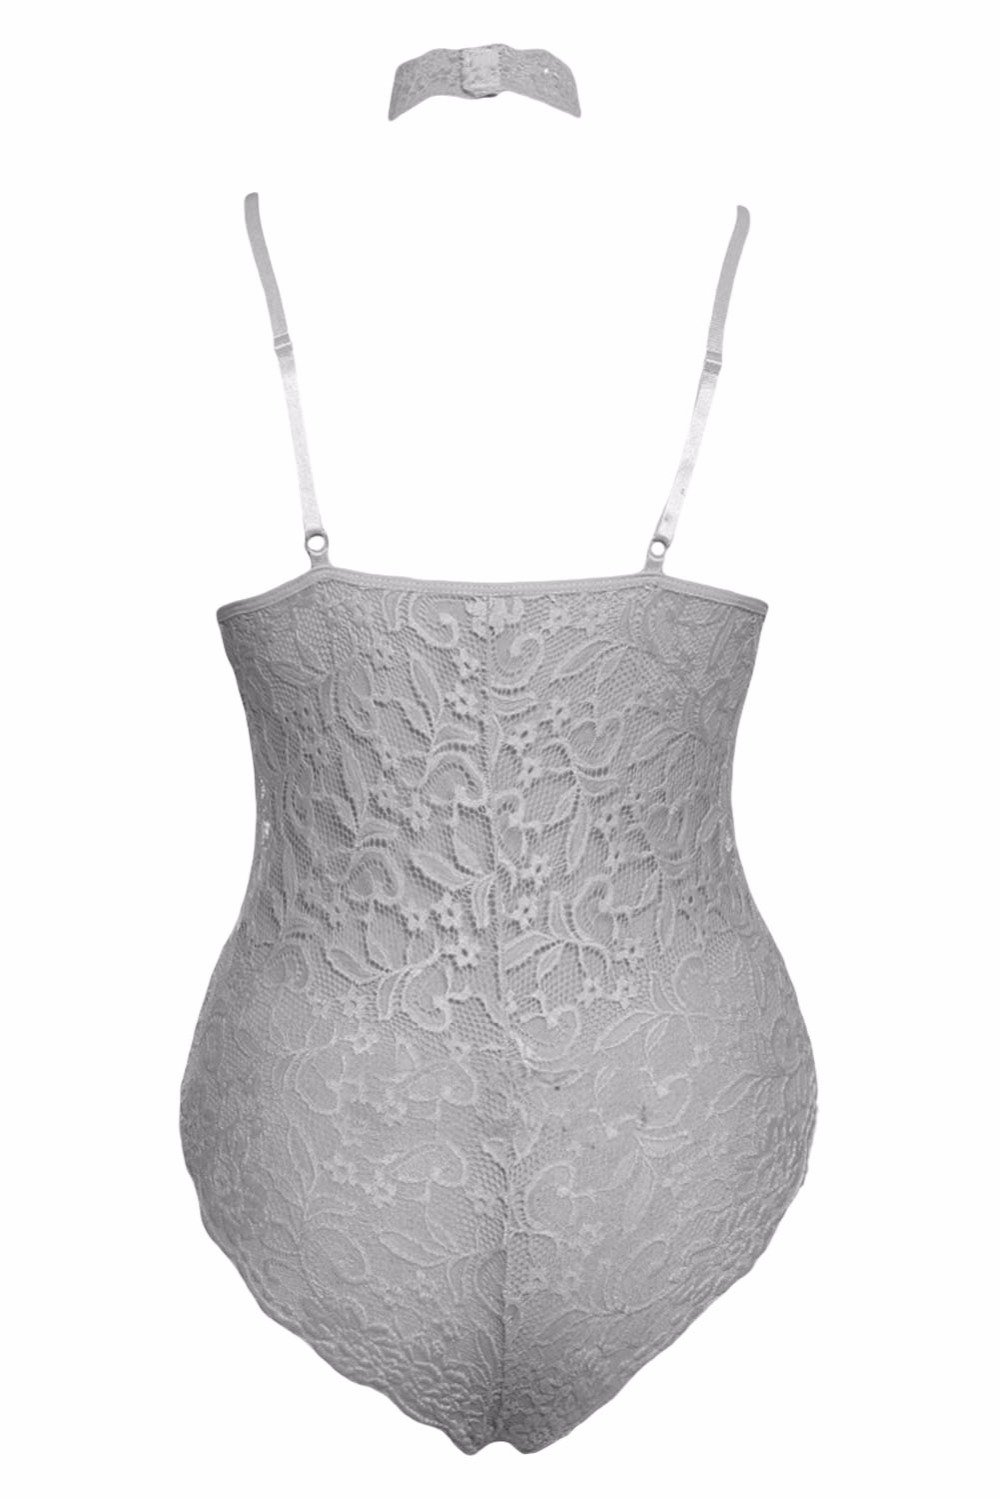 Grey-Sheer-Lace-Choker-Neck-Teddy-Lingerie-LC32139-11-3